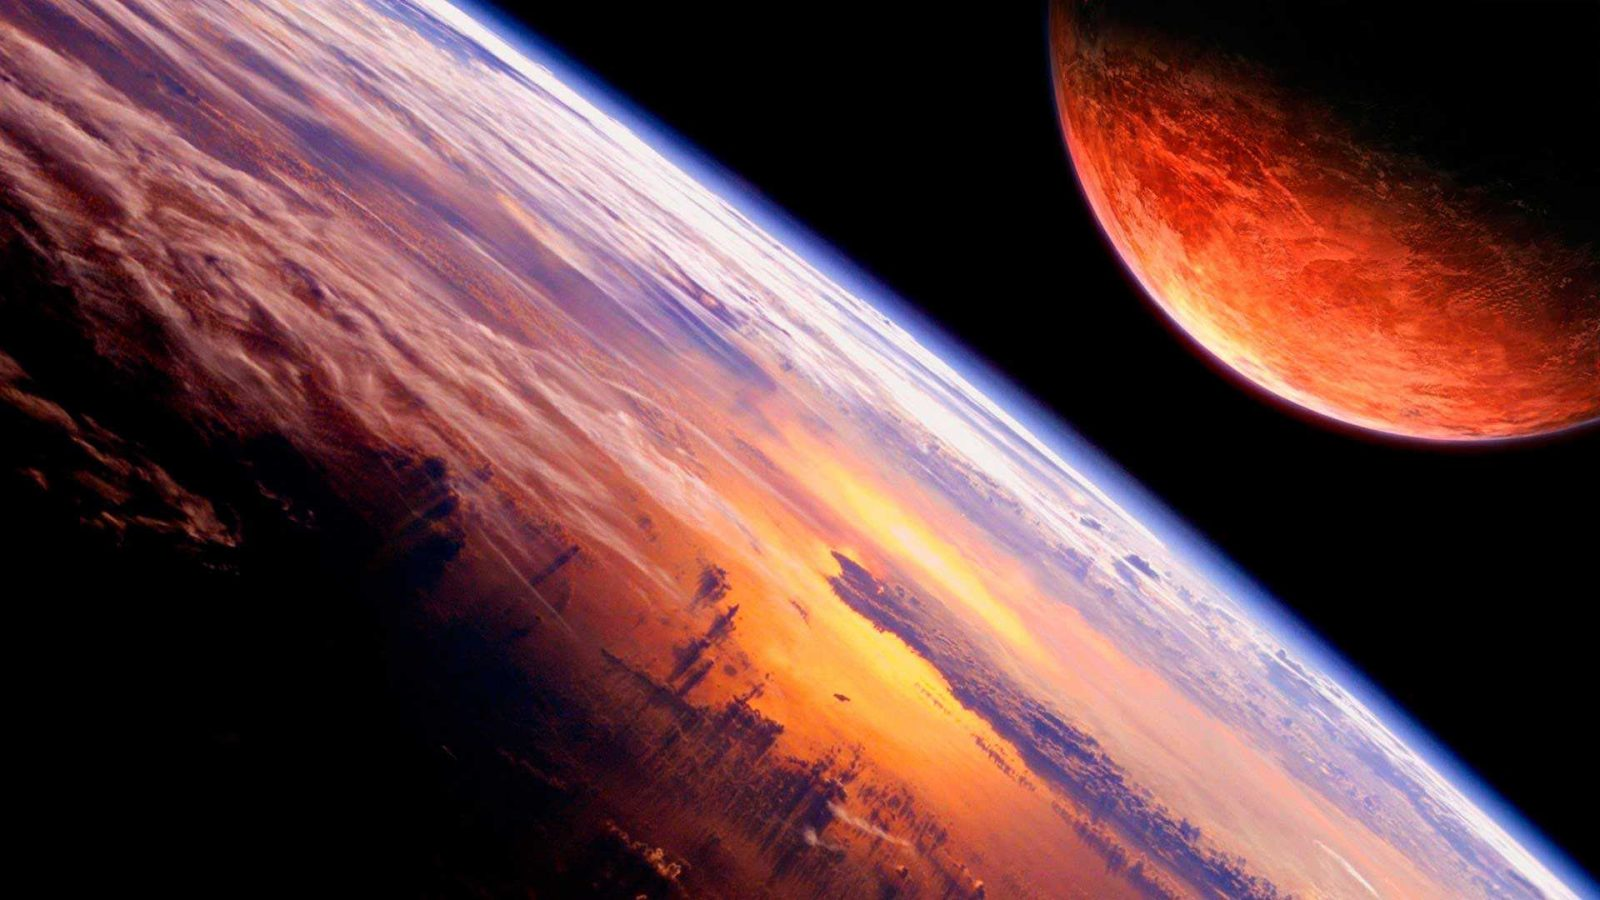 planet x Planet x was a place-holder name used by astronomers in their search for a planet beyond the orbit of neptune they found pluto (but later lost it demoted it to a dwarf planet) it is also the term favored in several apocalyptic predictions and conspiracies to refer to a hypothetical badass-sounding planet.